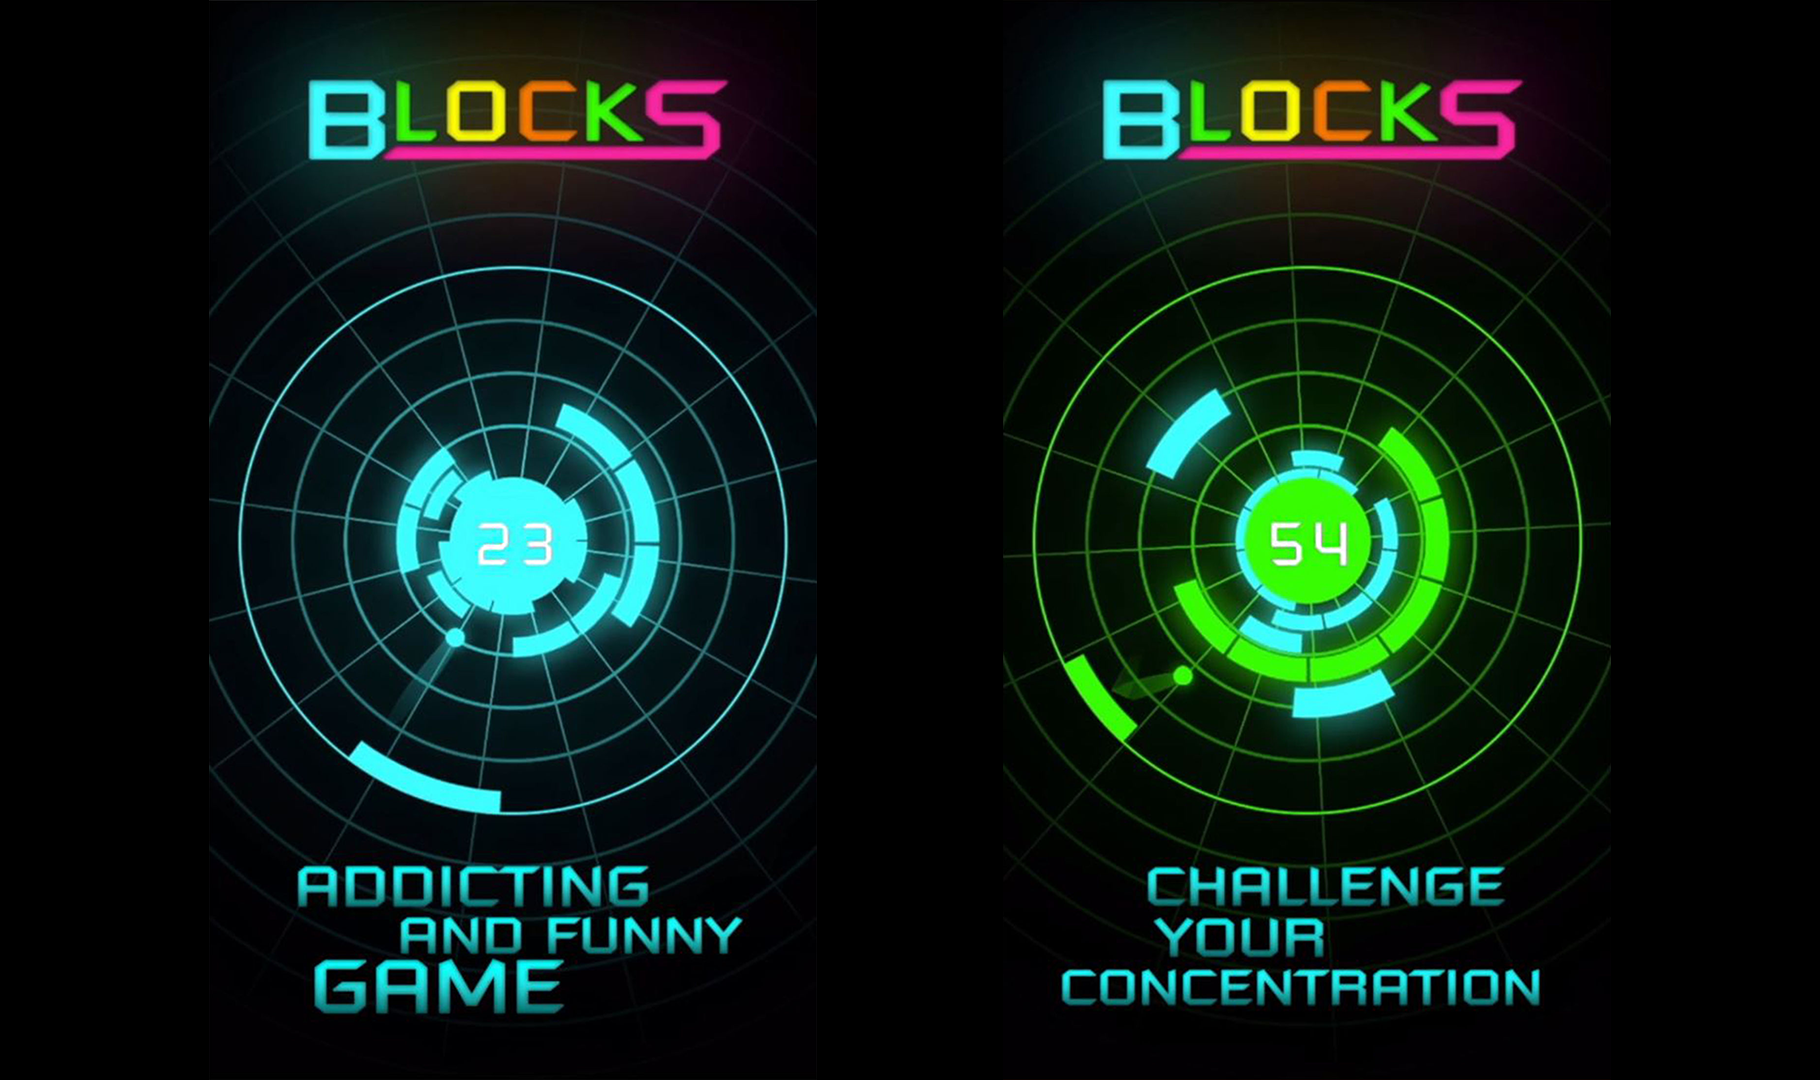 Blocks! - A Brick Breaker Game